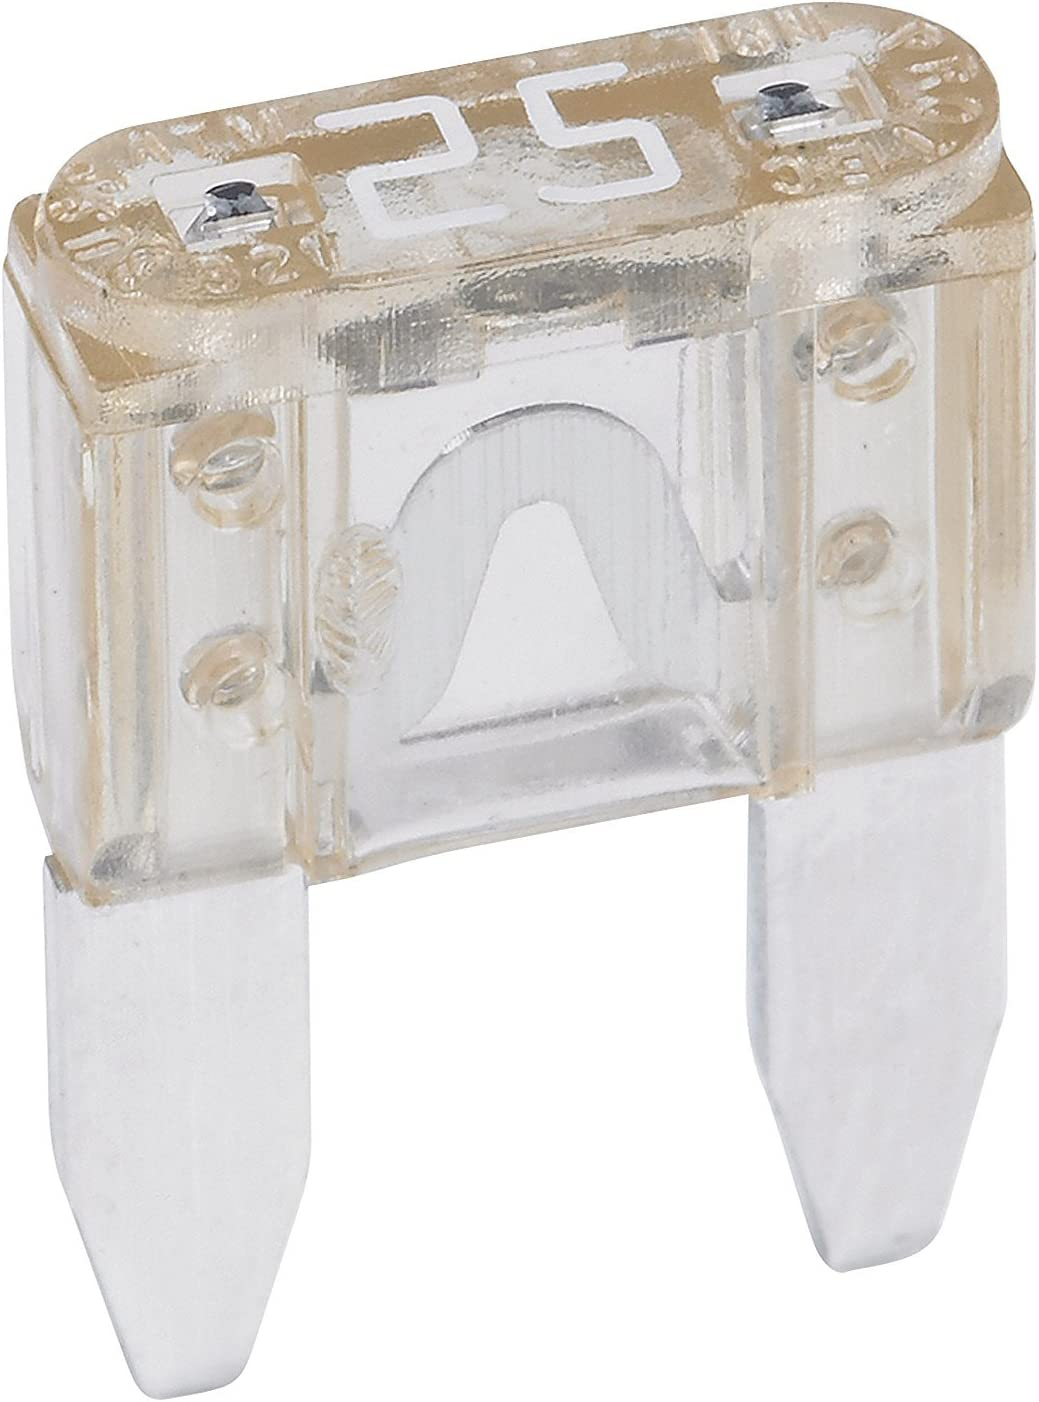 Beauty products Bussmann 25 Amp Fuse Mini OFFicial store Blade